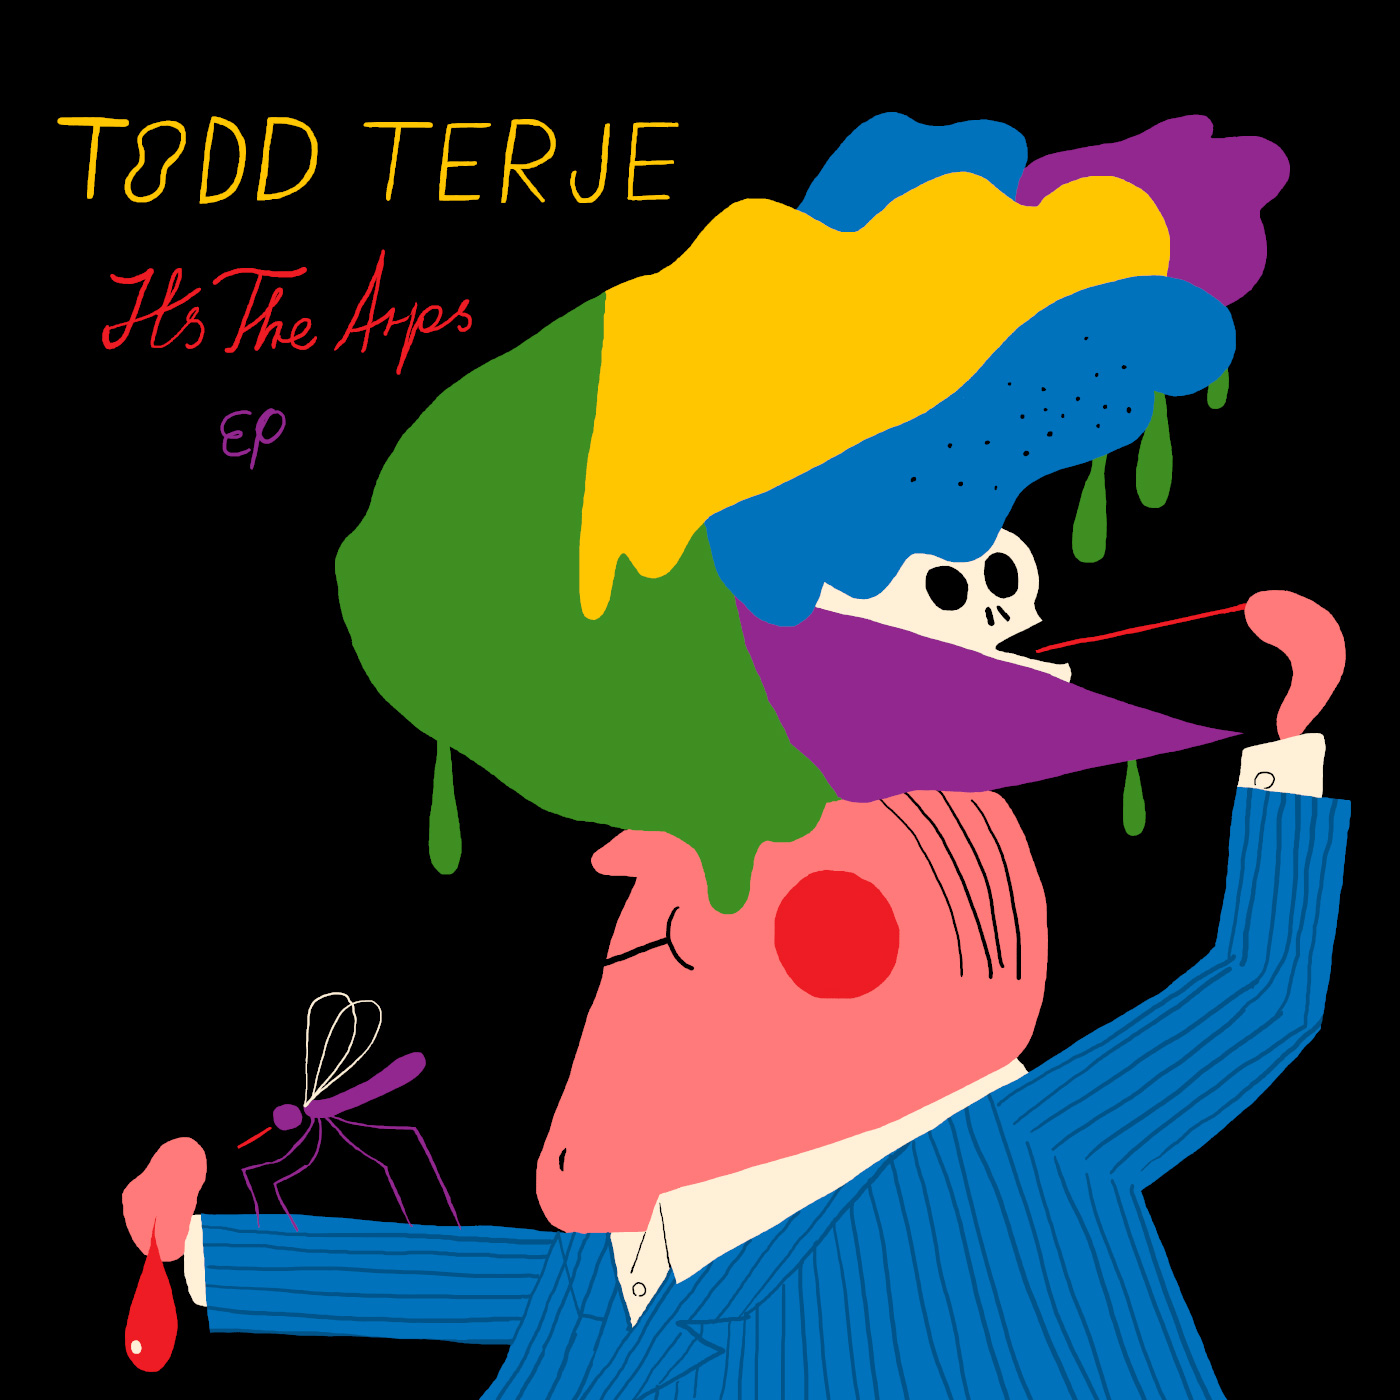 toddterje Top 50 Songs of 2012